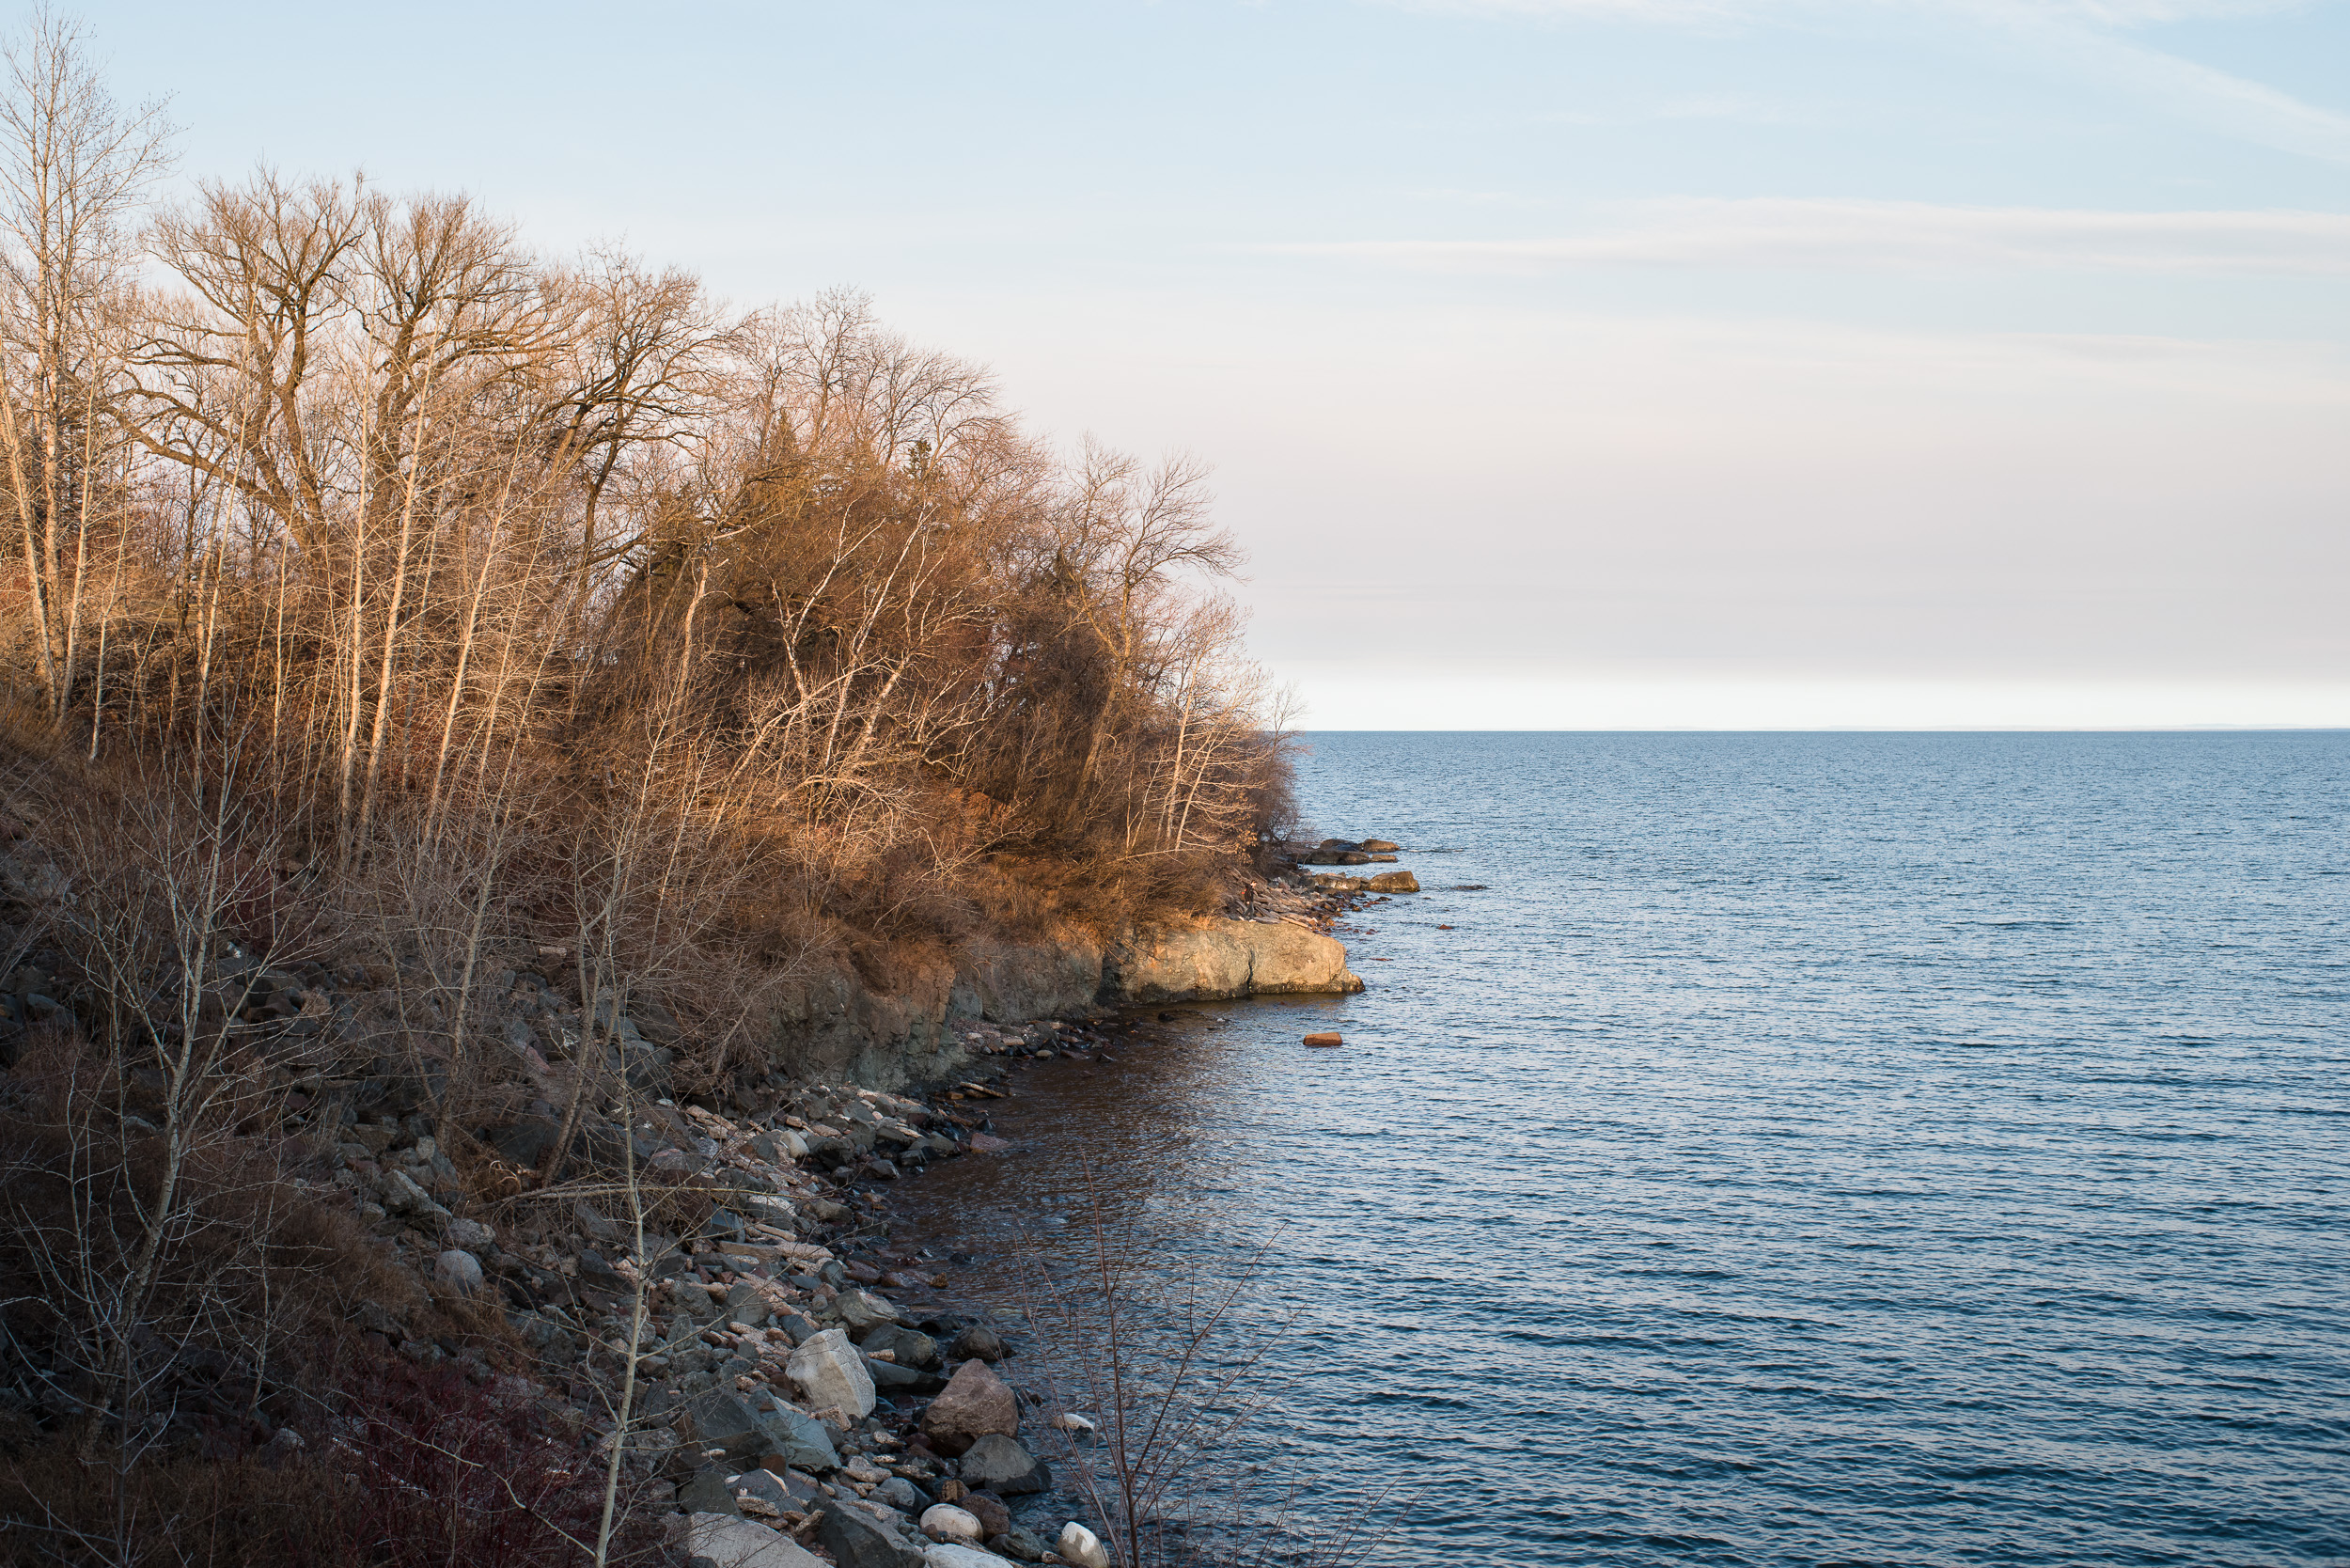 A hard to see boy explores the rock ledge. Lake Superior, Duluth, MN. #lakesuperior #shore #blue #water #43mm #spring